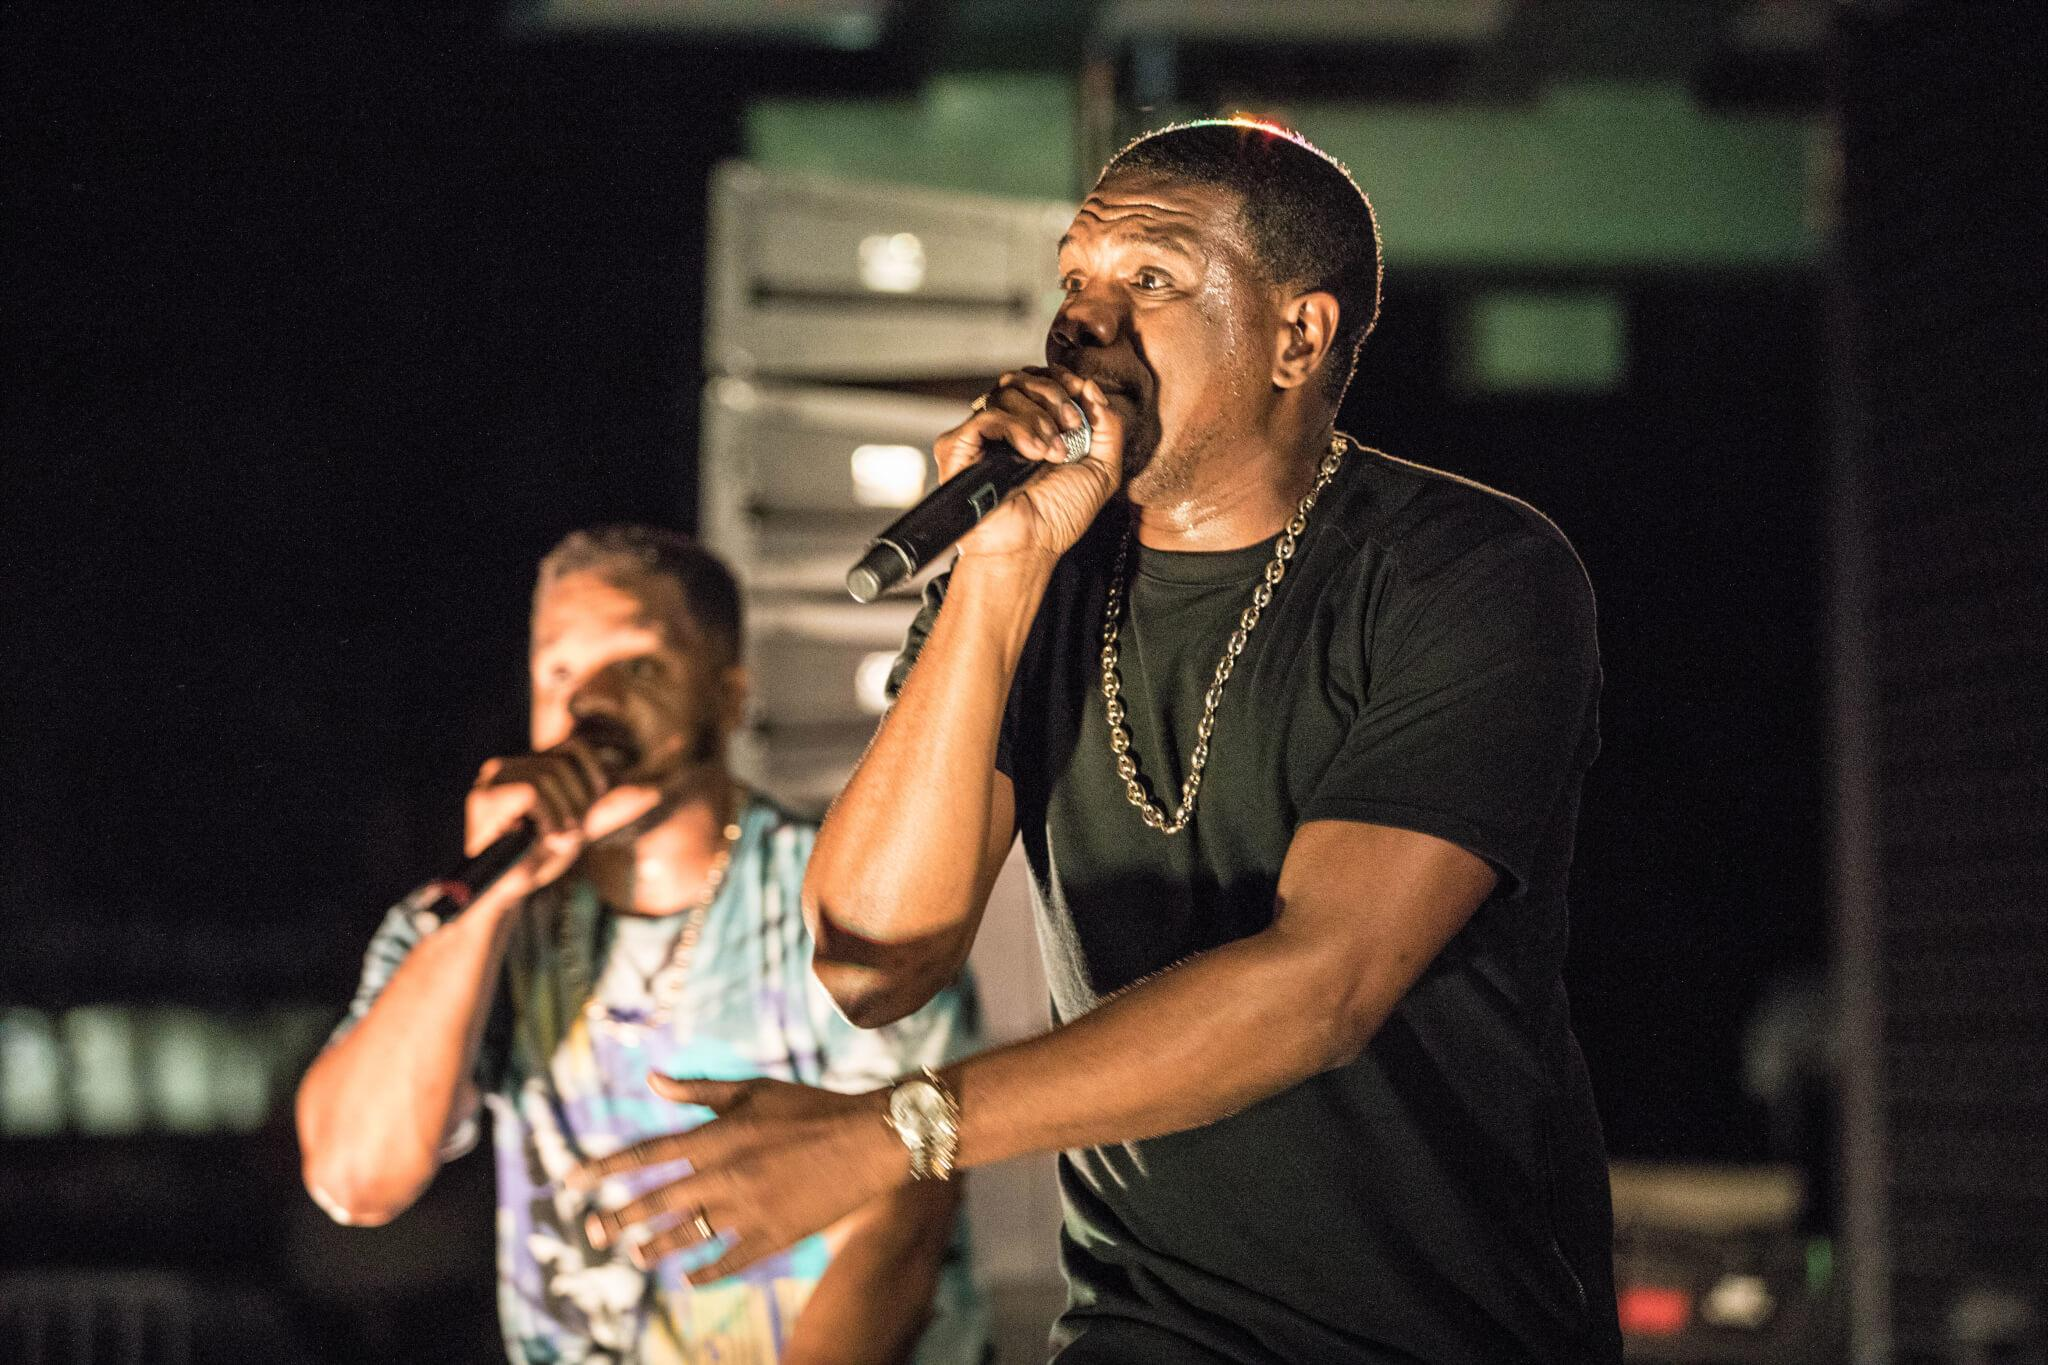 Night Flight Headliner R. City performs for FGCU Homecoming Week